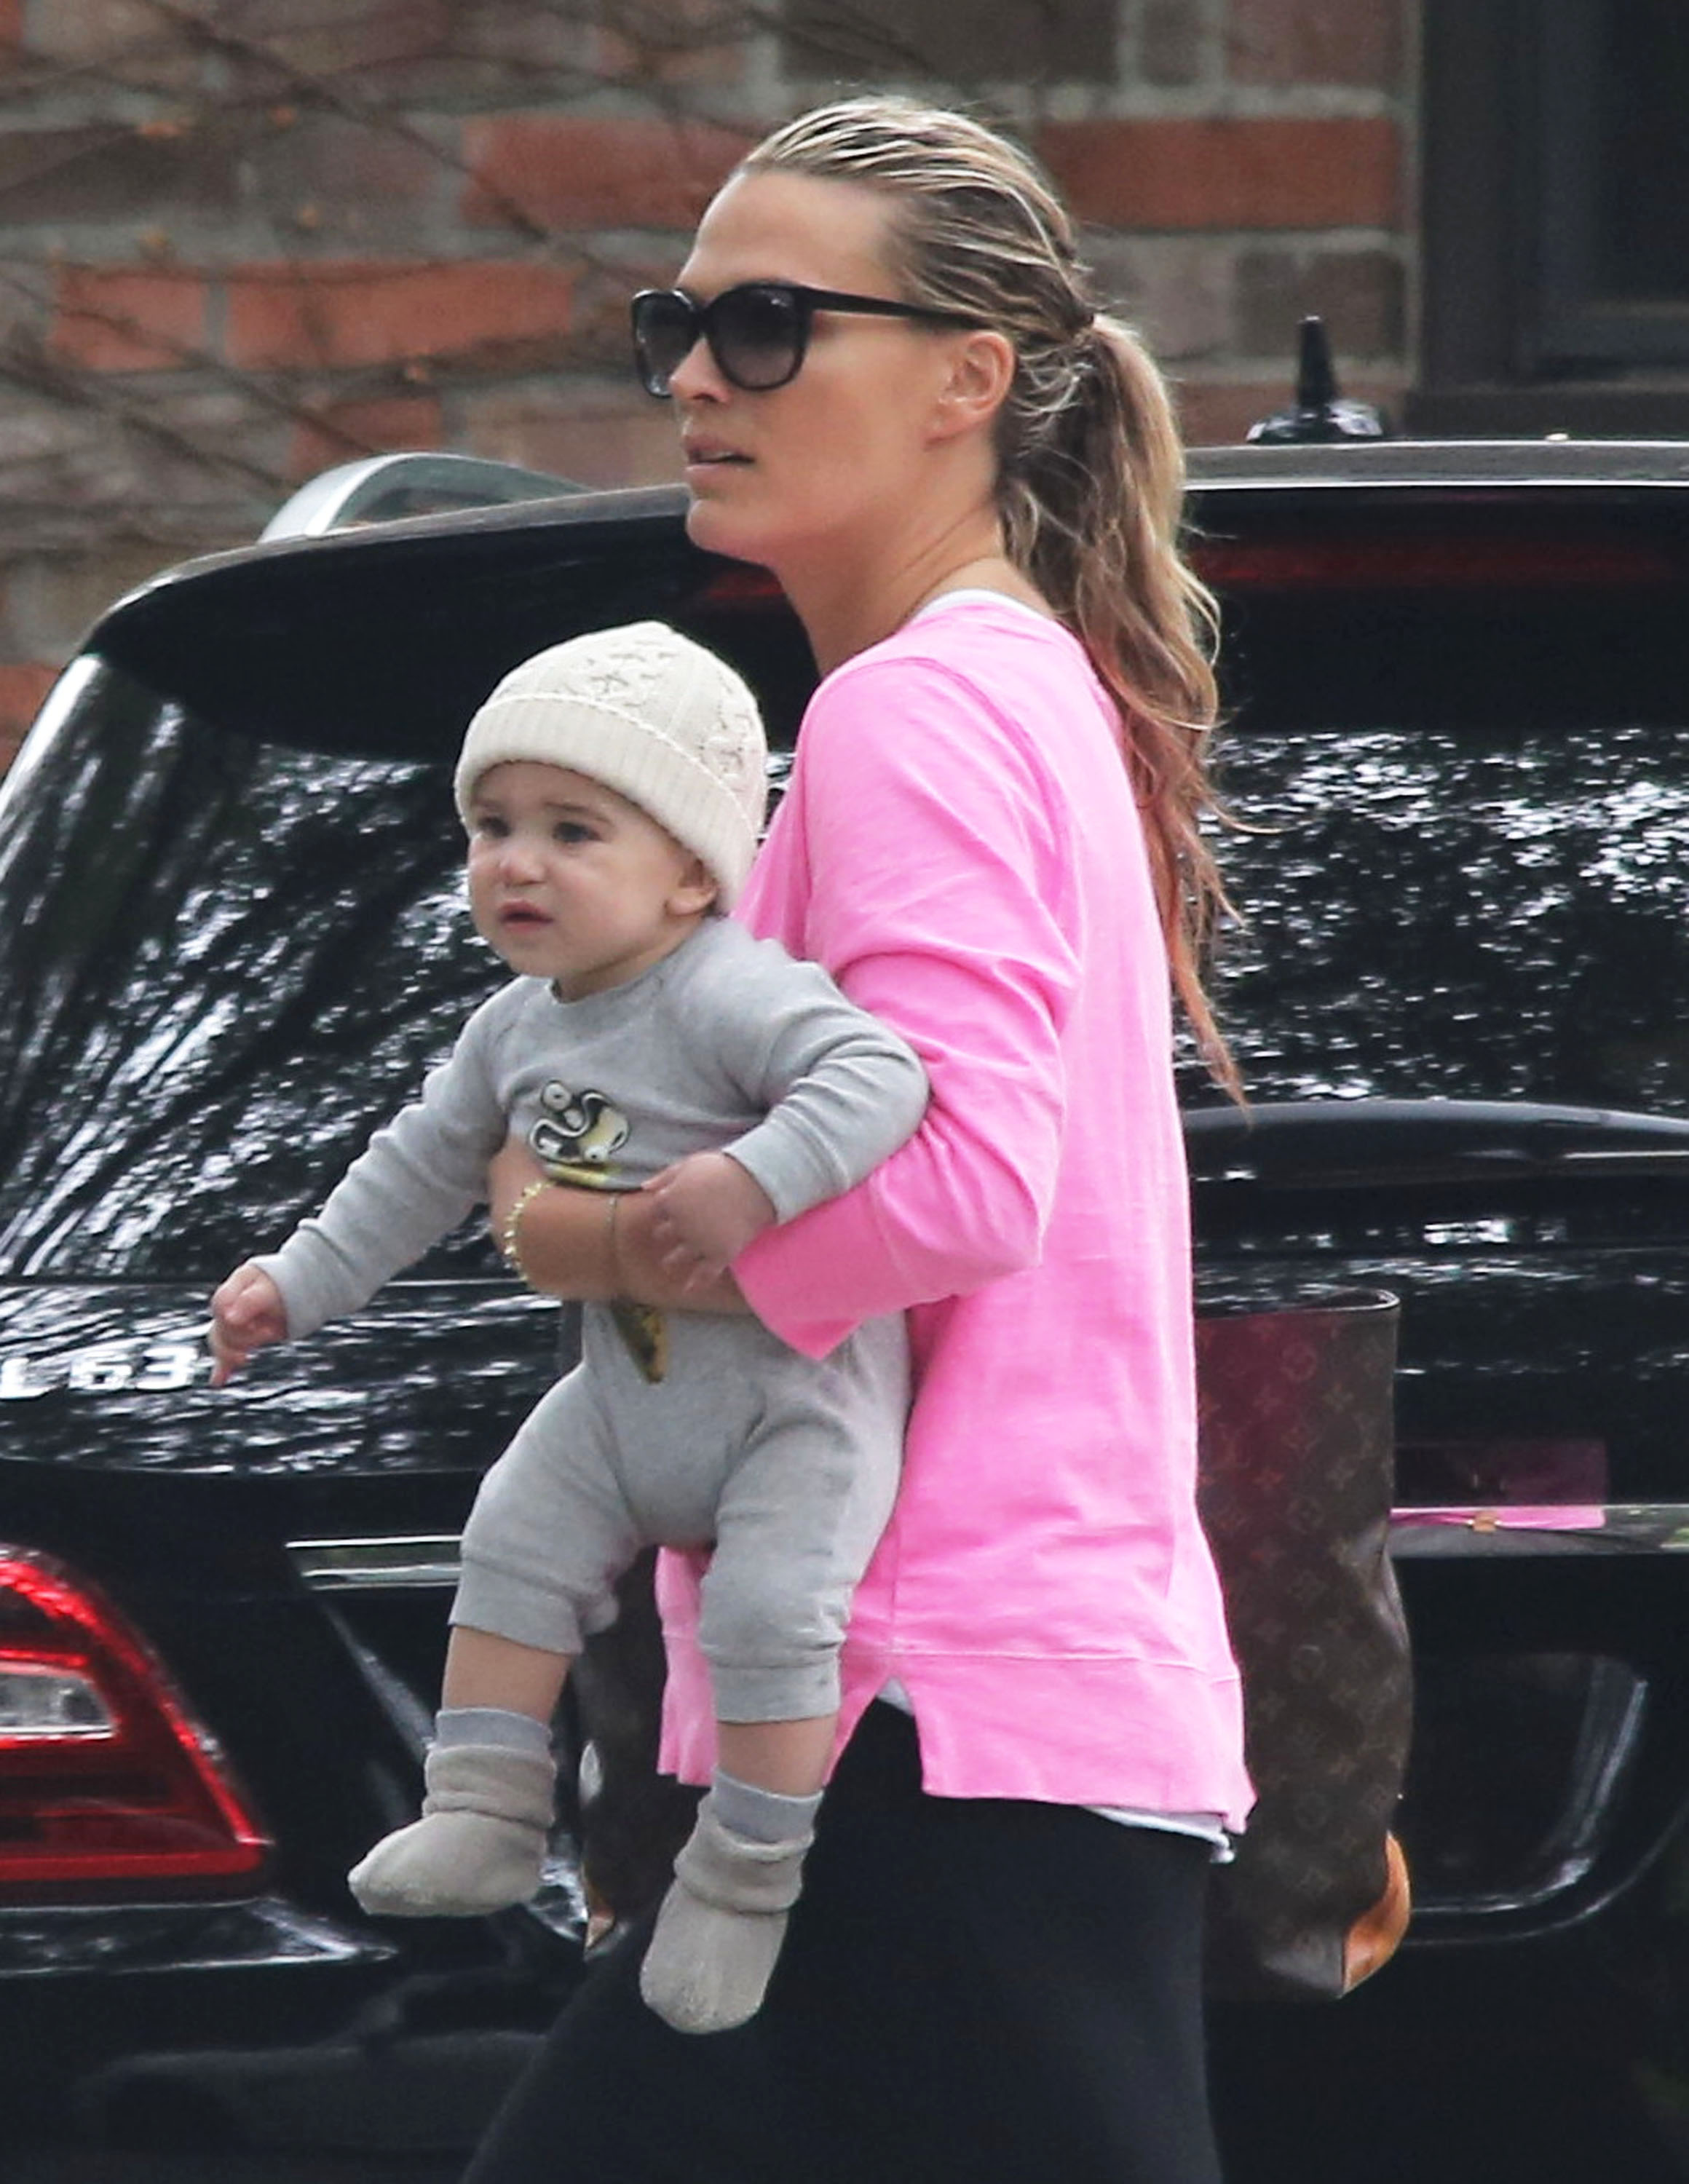 Molly Sims stepped out in LA with son Brooks Stuber on her hip.